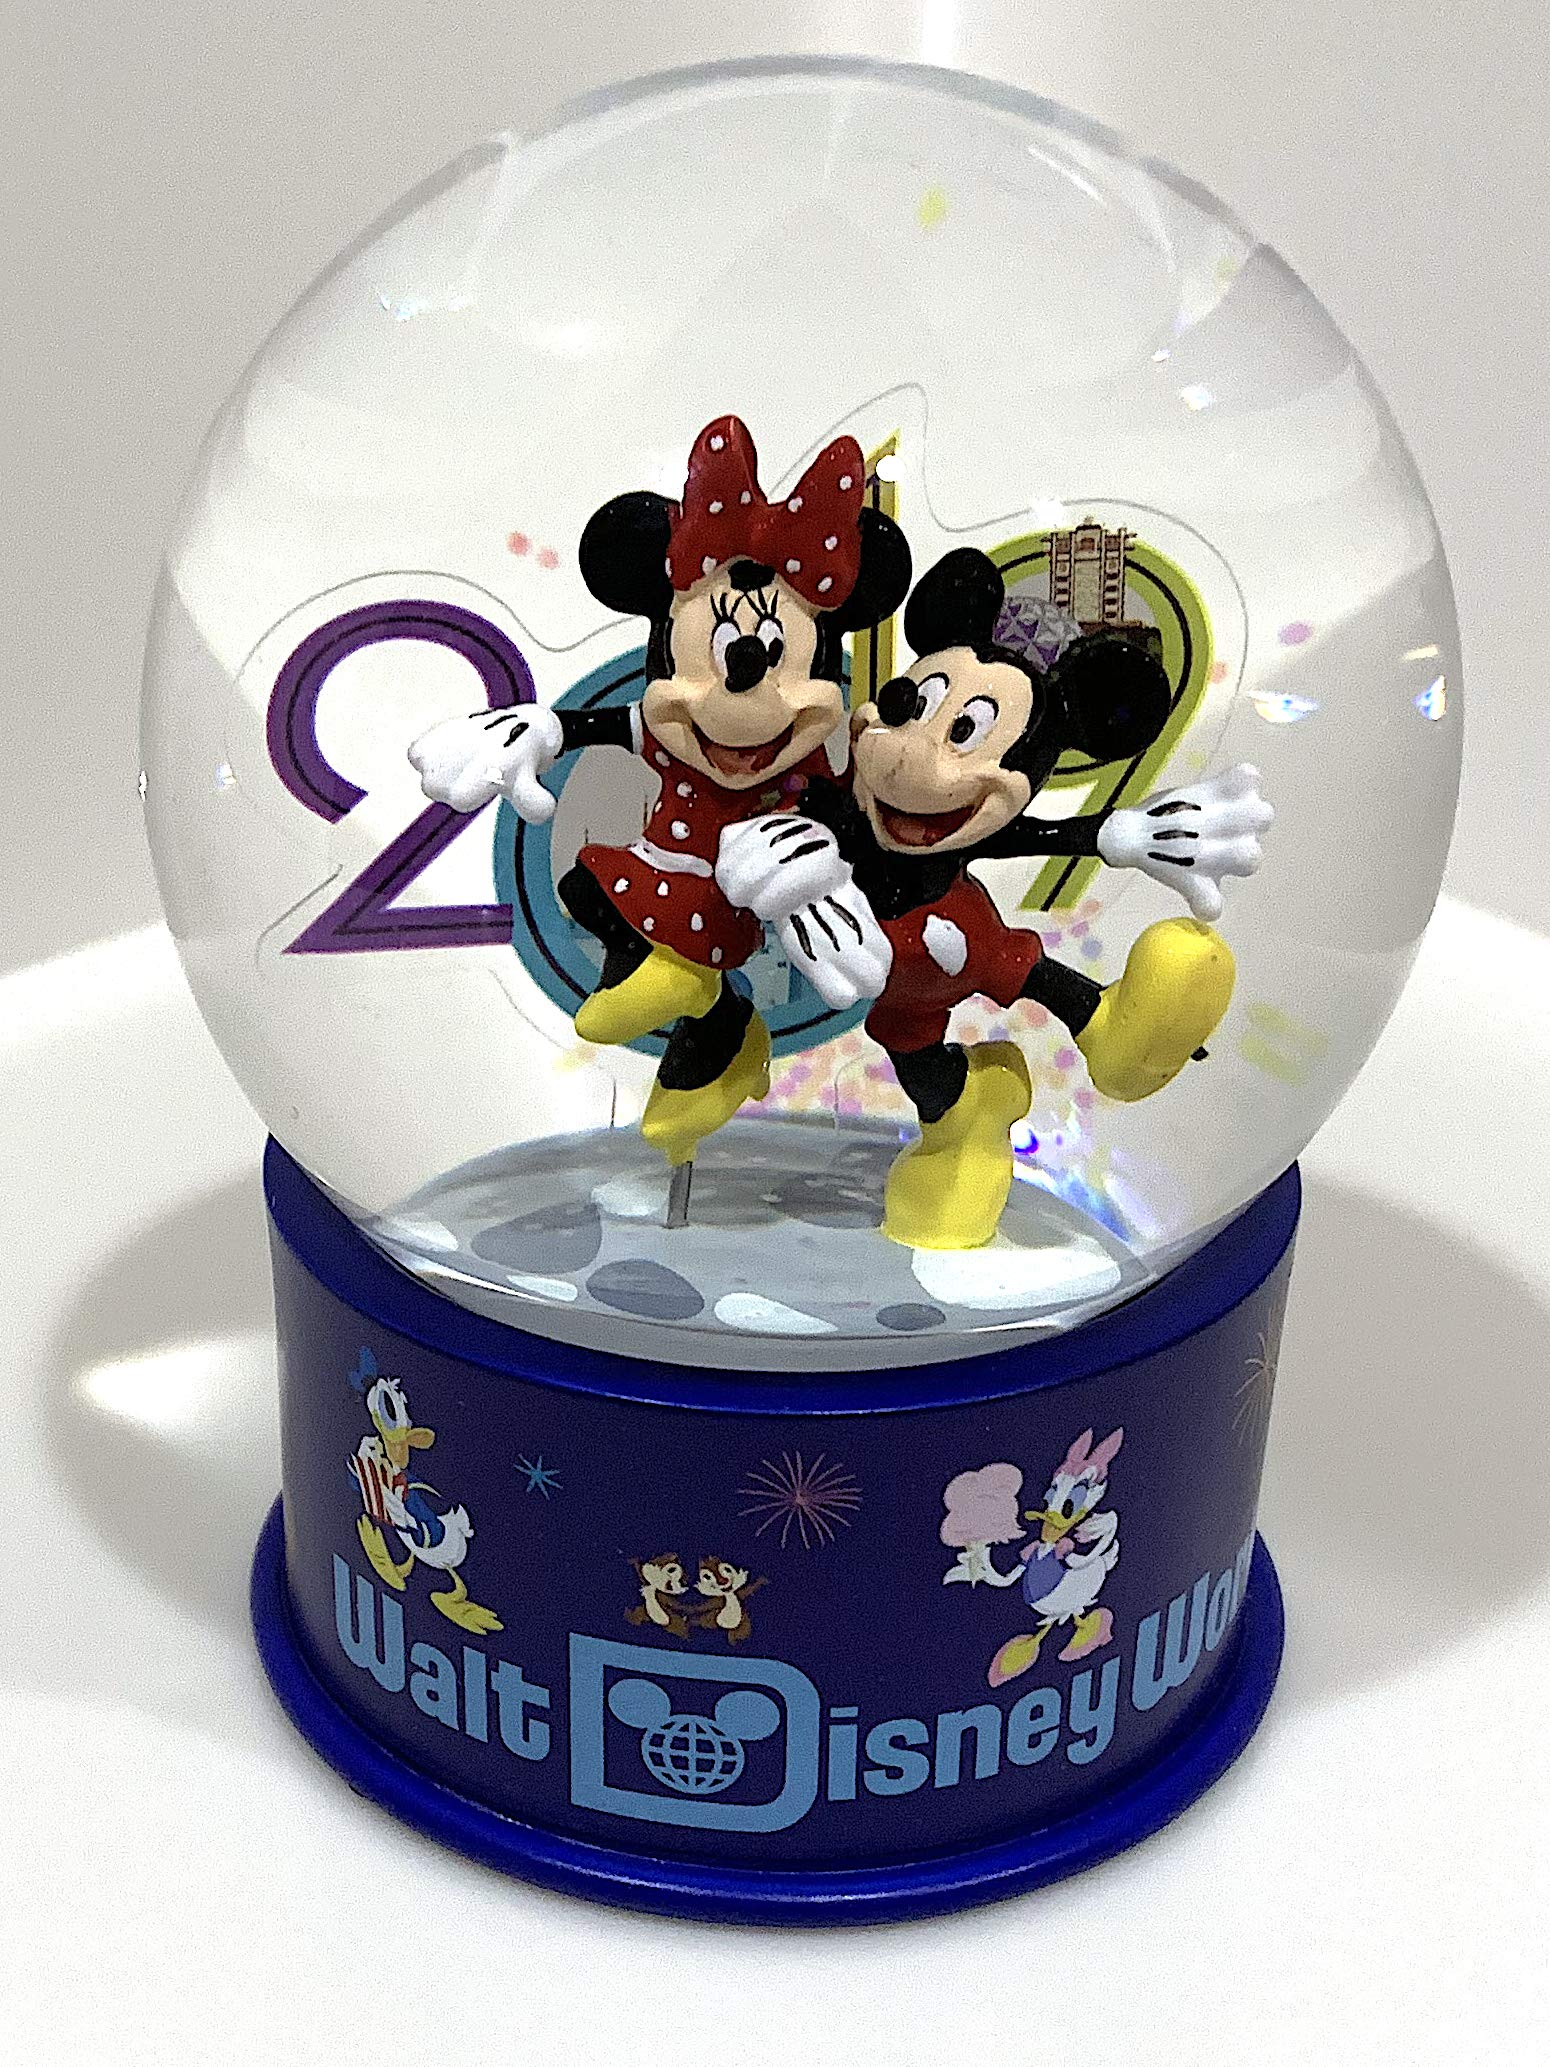 Walt Disney World 2019 Mickey Minnie Mouse Glass Snowglobe by Disney Parks